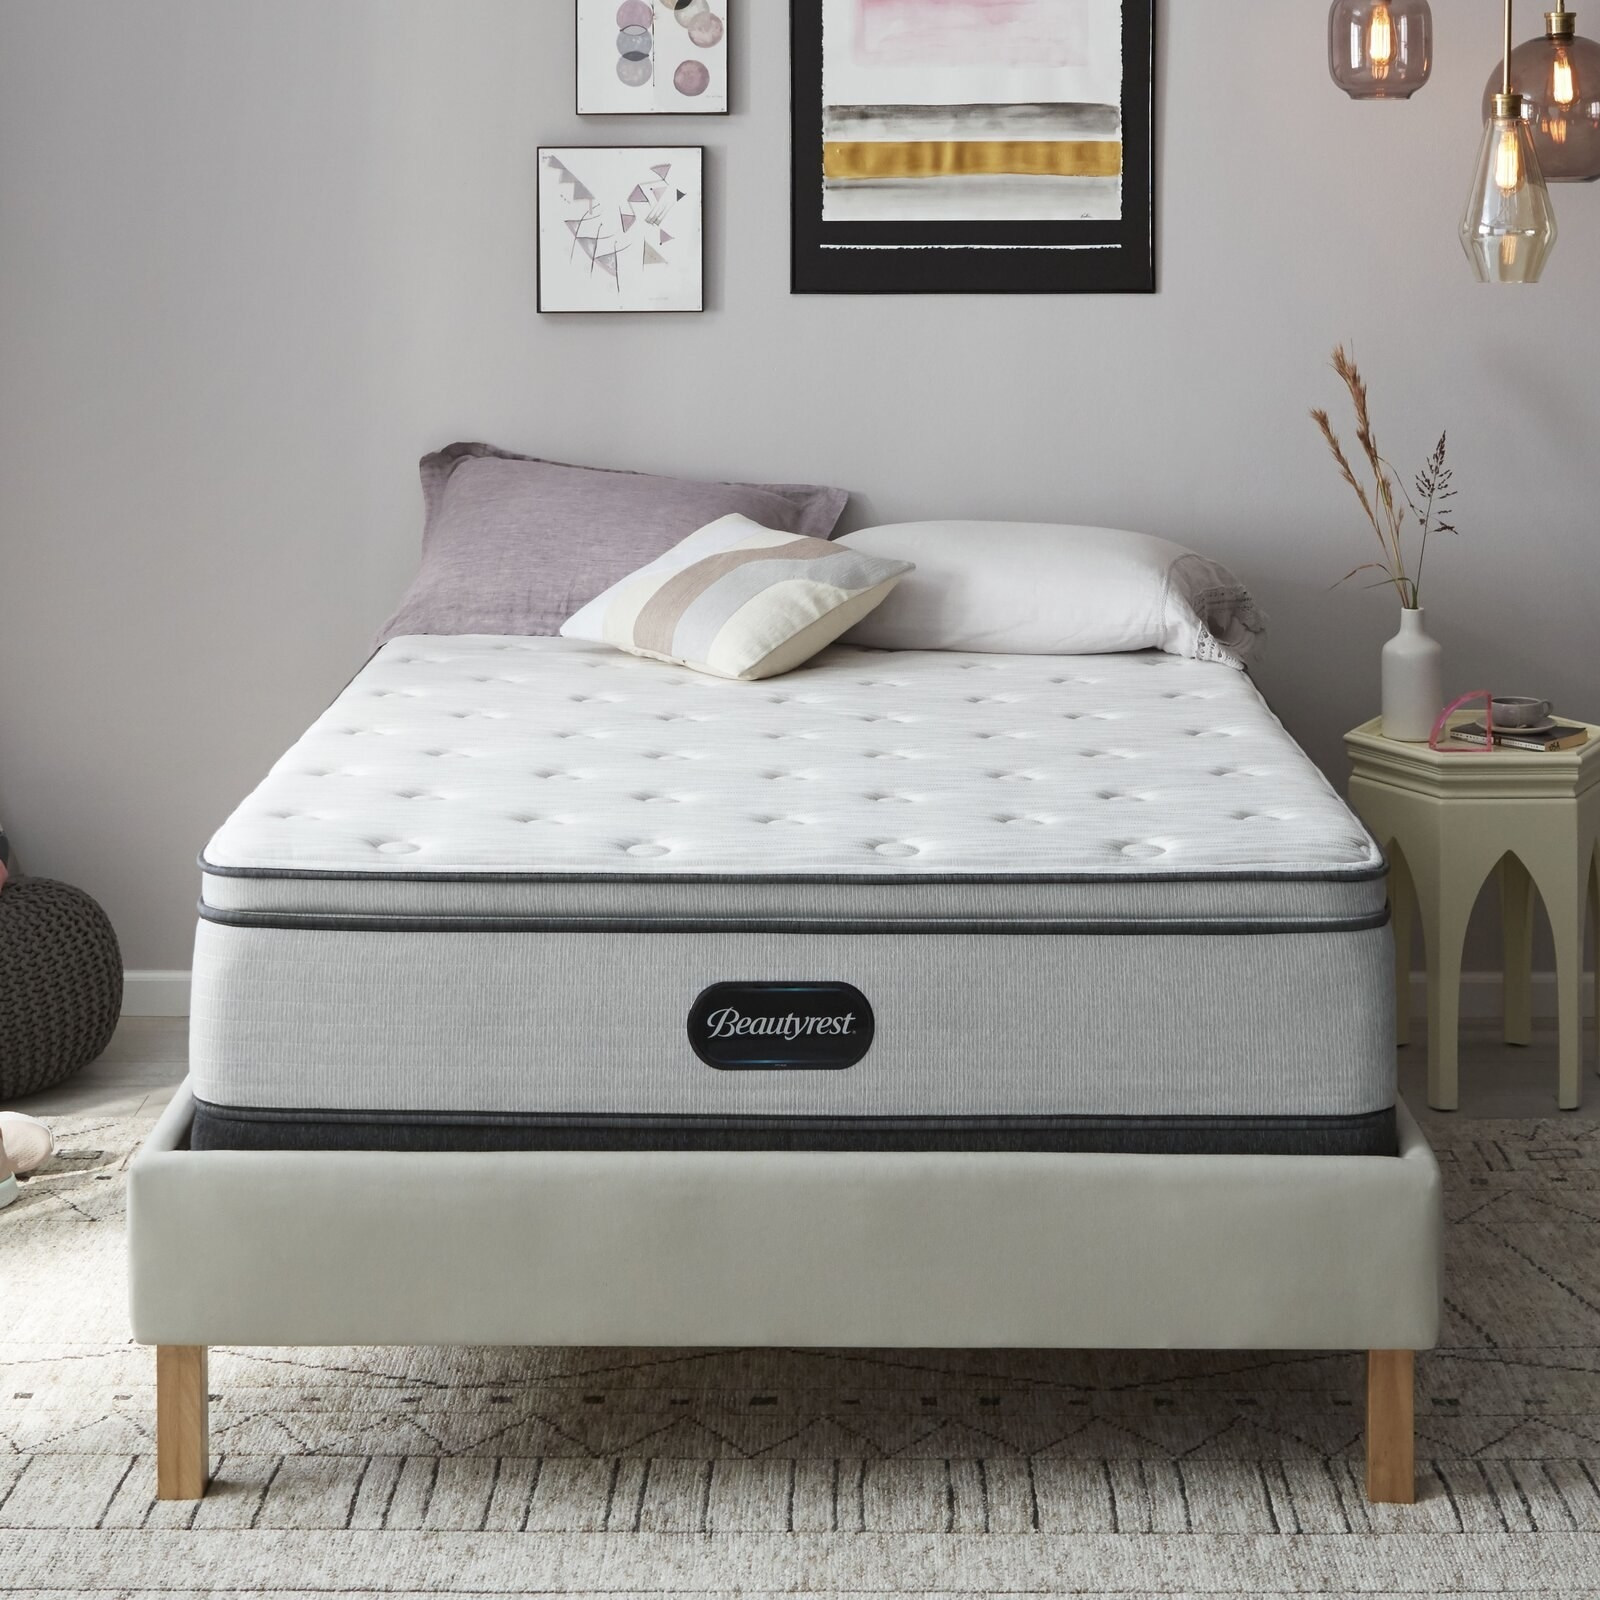 The mattress, which is thick